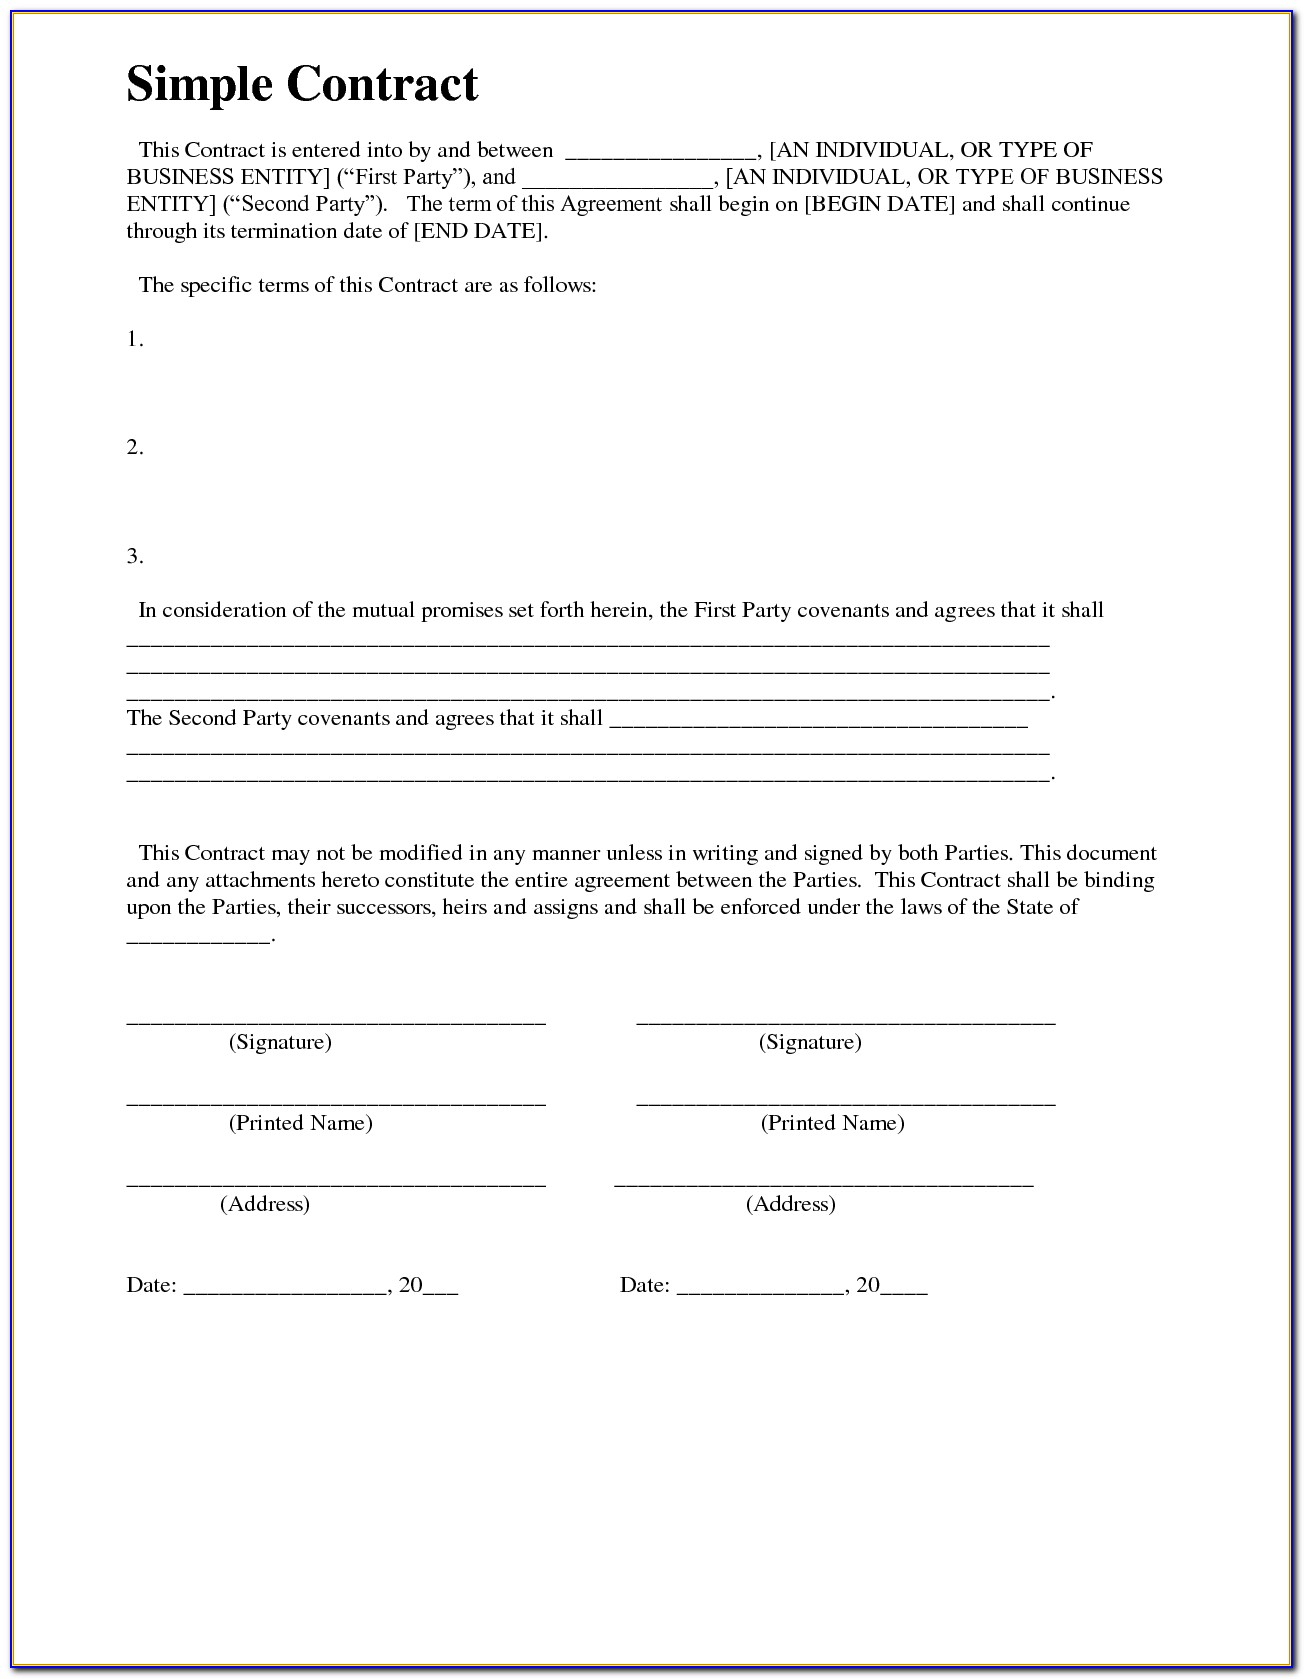 Free Simple Contract Example